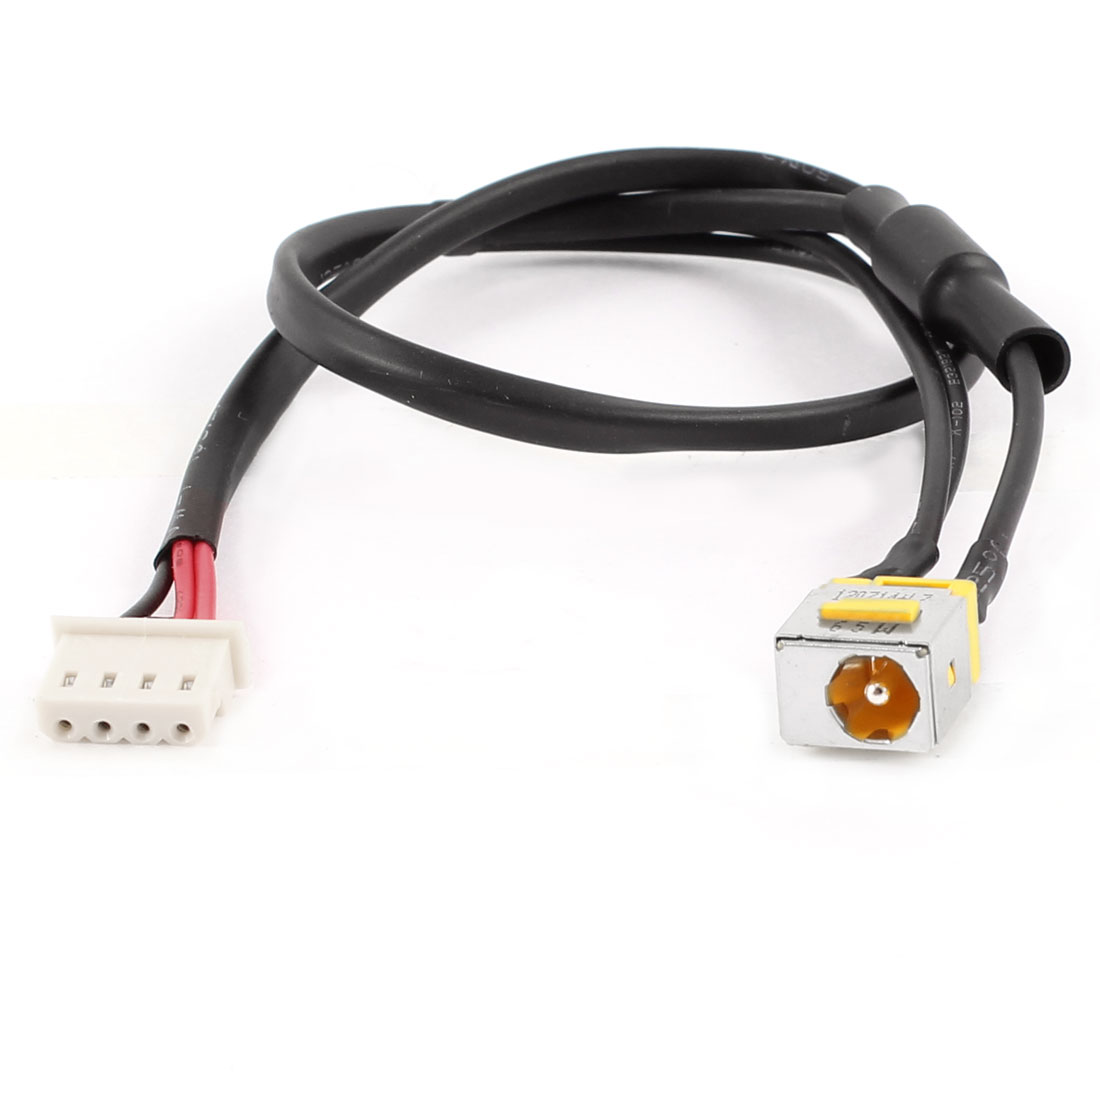 Laptop DC Power Jack Socket Cable Wire Harness PJ131 for Acer Aspire 5920 6530